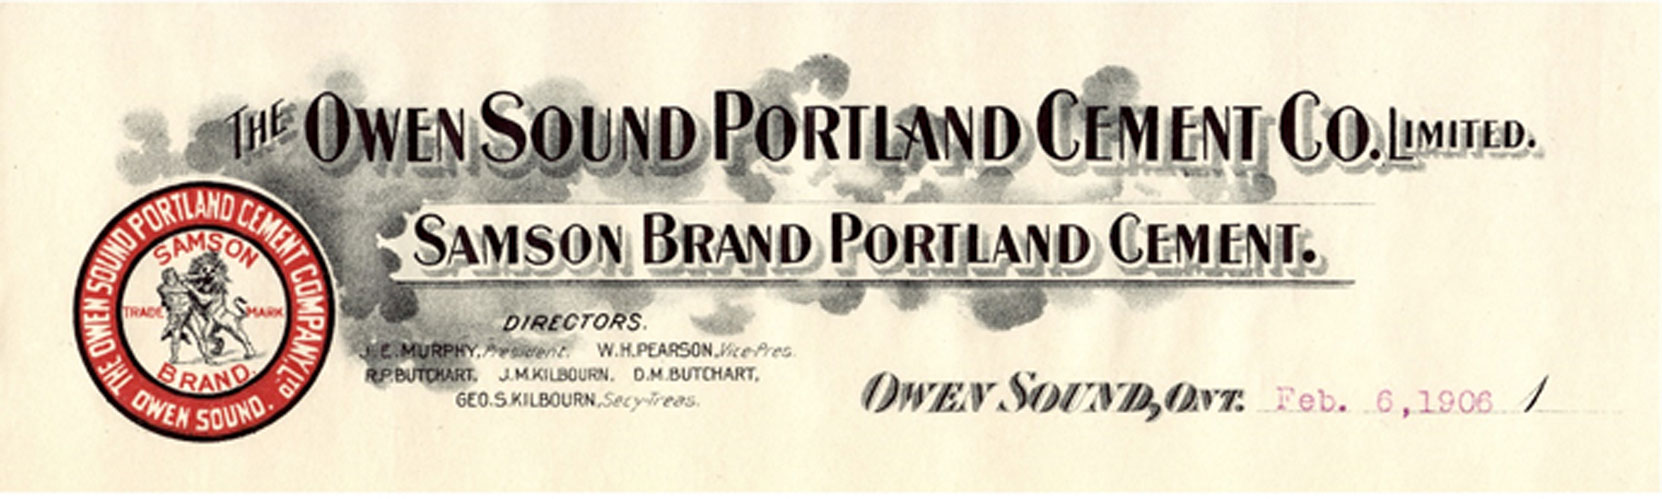 Owen Sound Portland Cement Company letterhead, 1906 Note the names of the corporate officers listed: James Edward Murphy, President; William H. Pearson, Vice-President; George S. Kilbourn, Secretary-Treasurer; Directors: Robert Pim Butchart, John M. Kilbourn, David Martin Butchart (Author's collection)